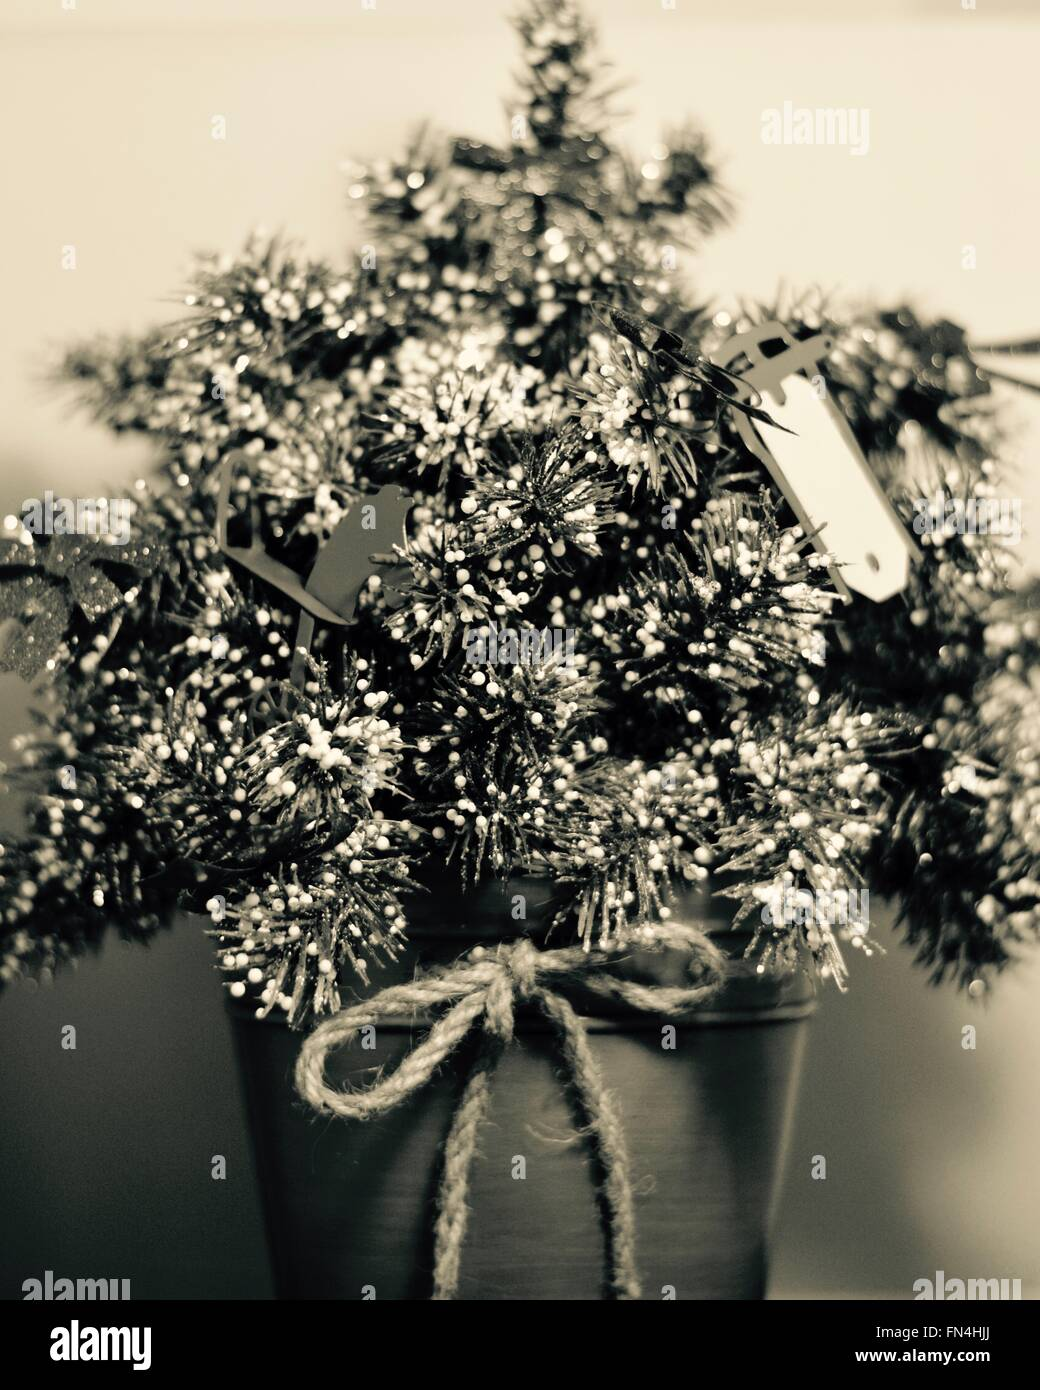 'An Old Fashioned Christmas'. Photographed in black in white to bring out the nostalgia of times past. - Stock Image